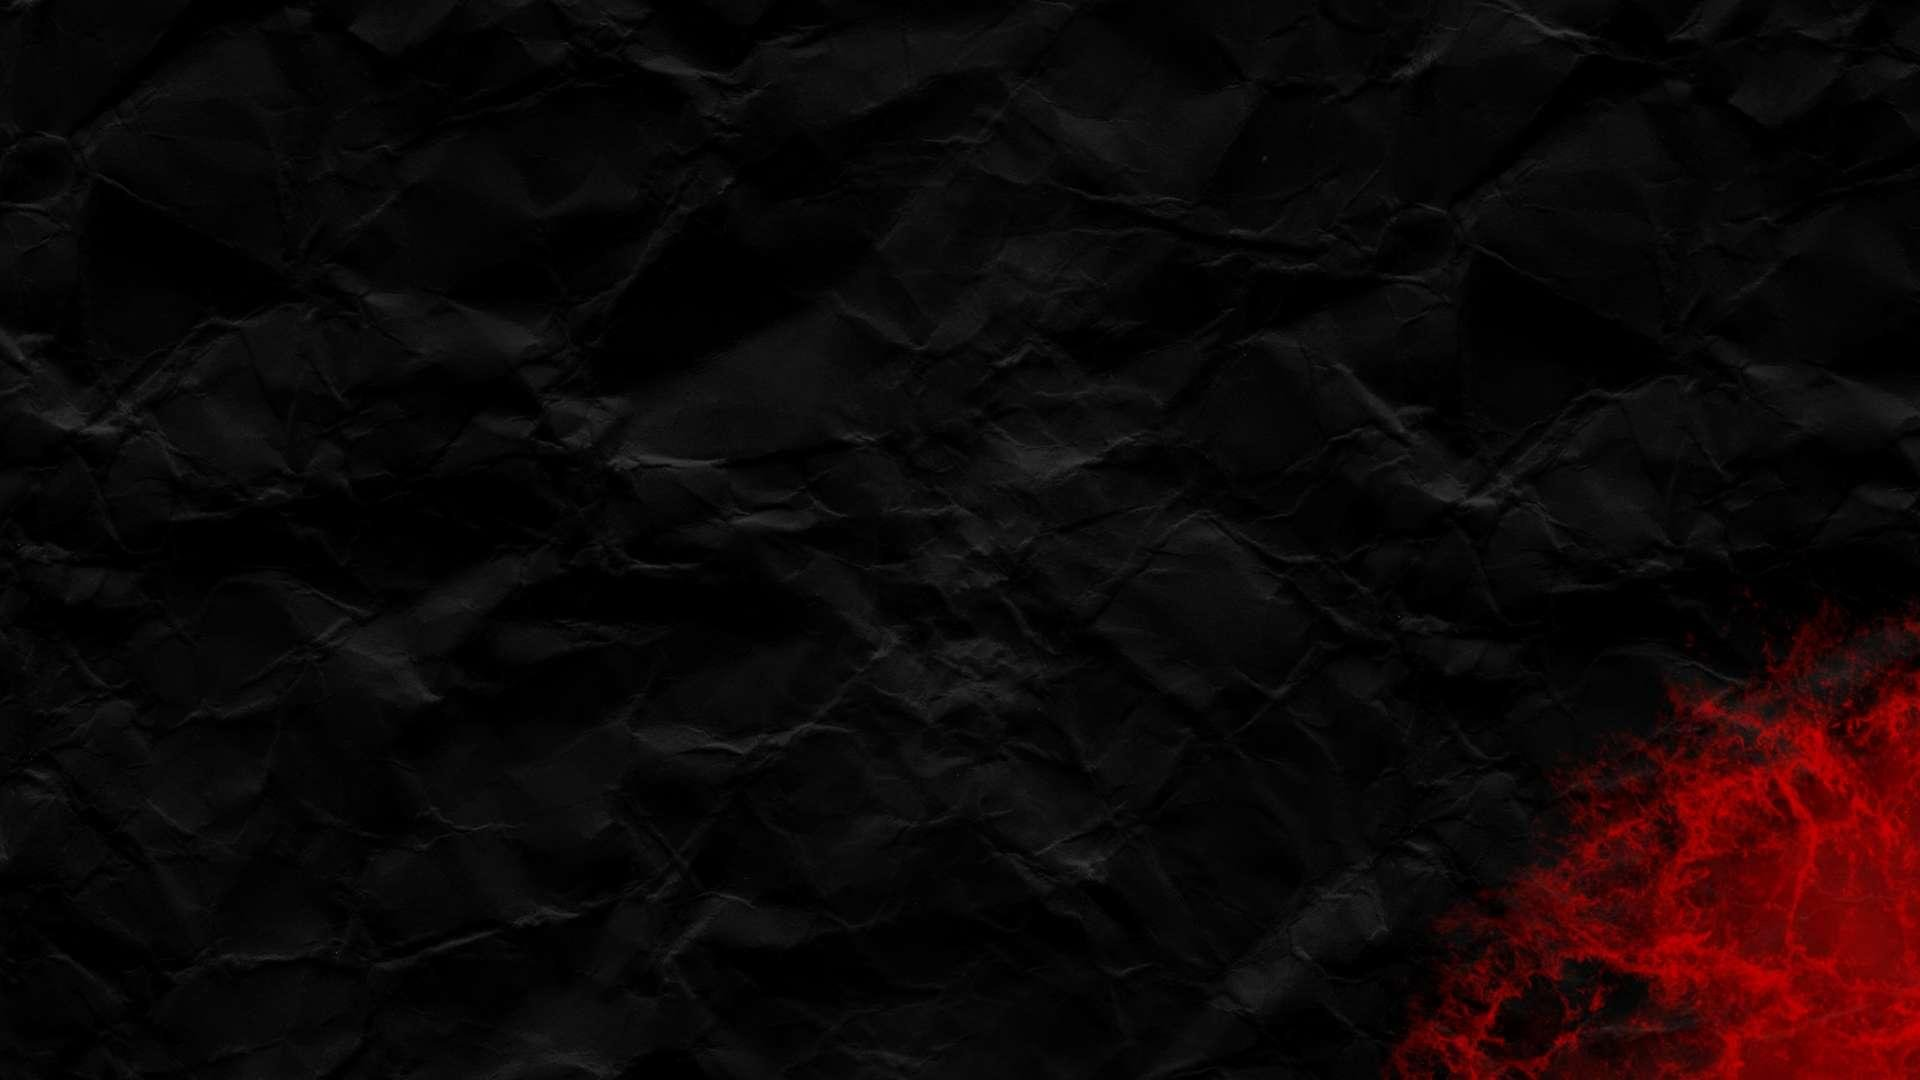 Black And Red Abstract Wallpaper Page 1920x1080